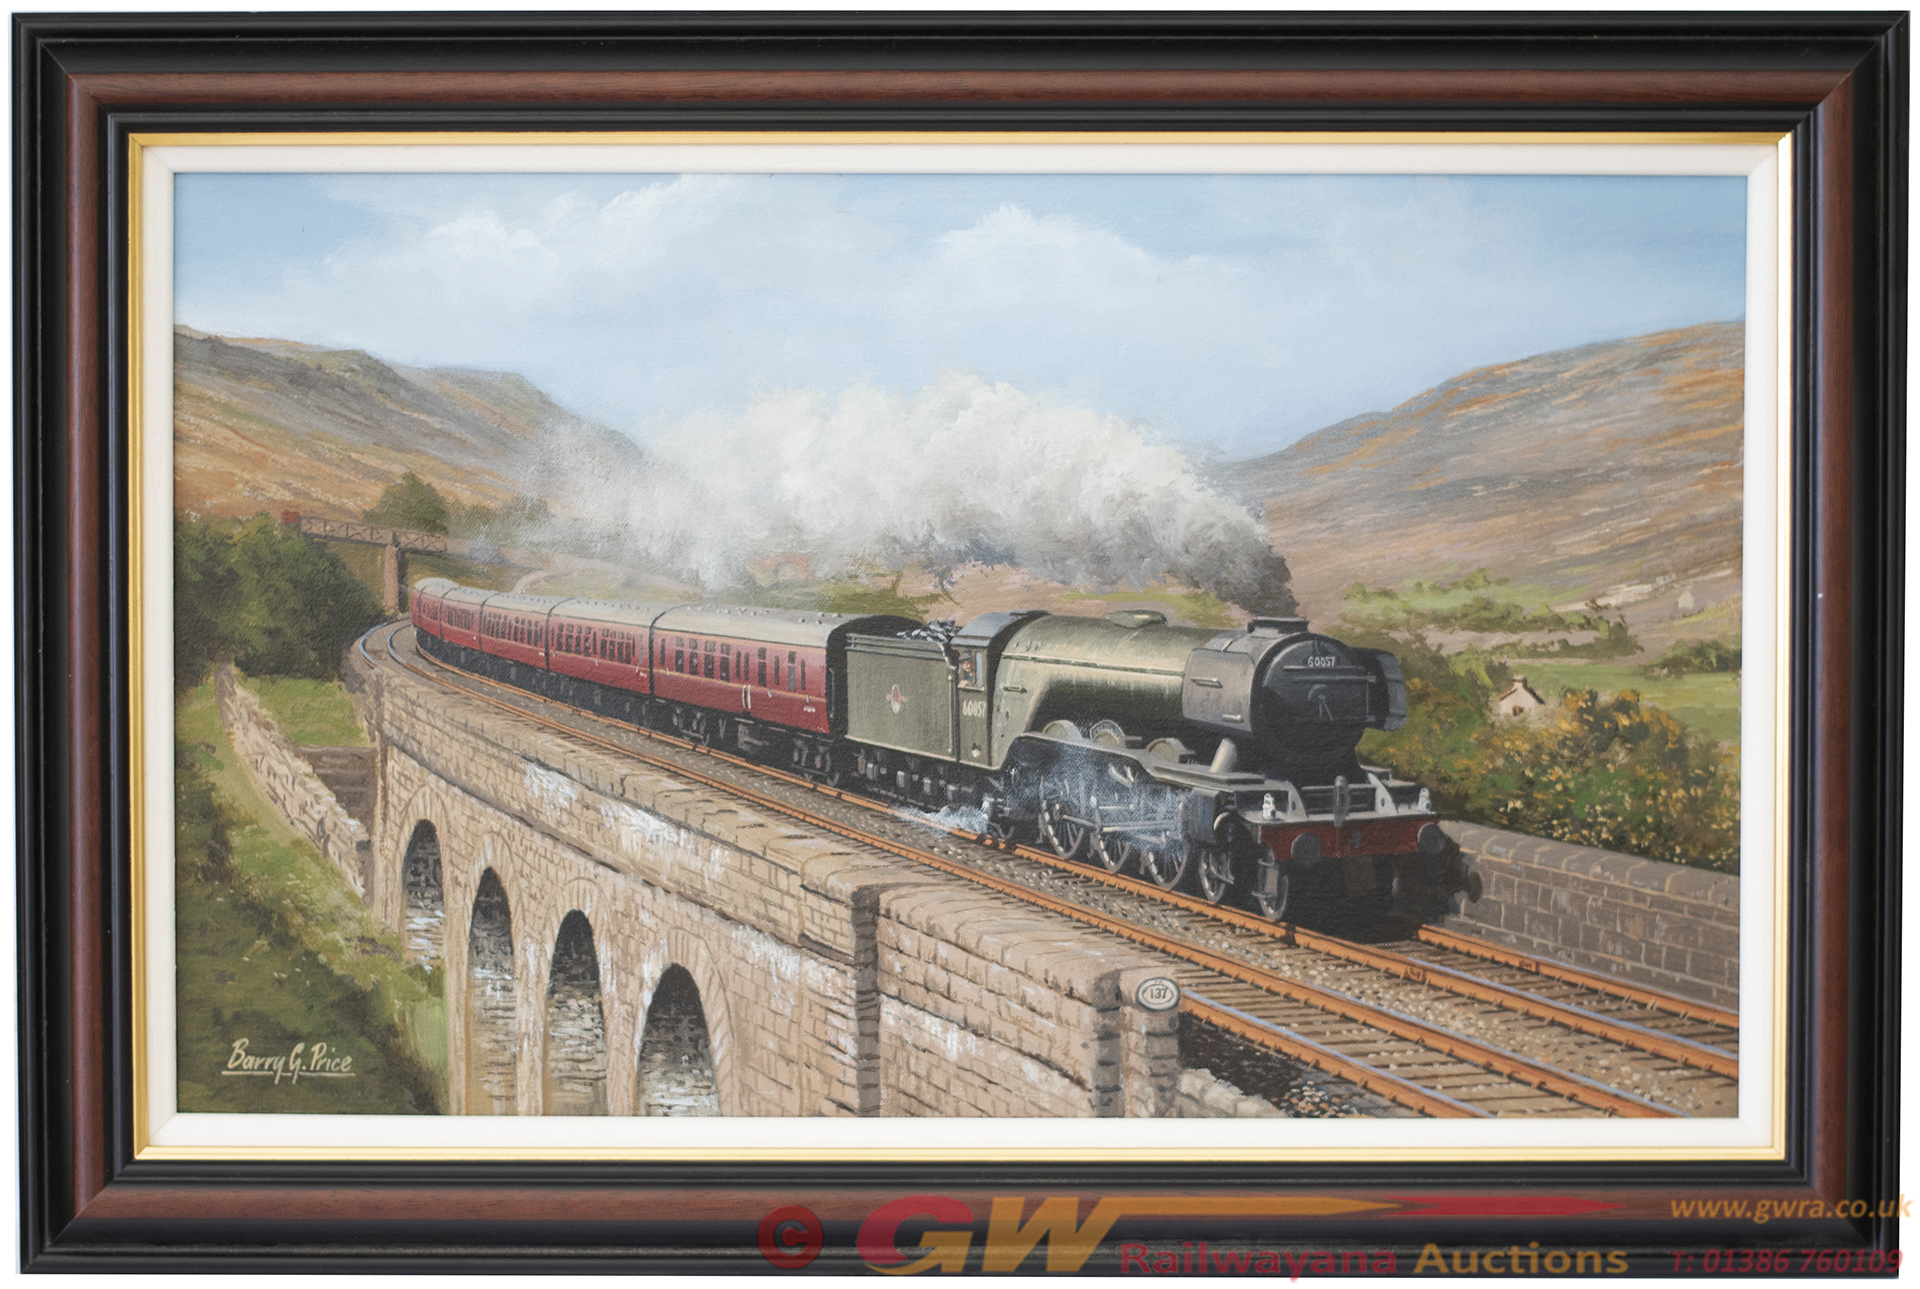 Original Oil Painting On Canvas By Barry Price Of